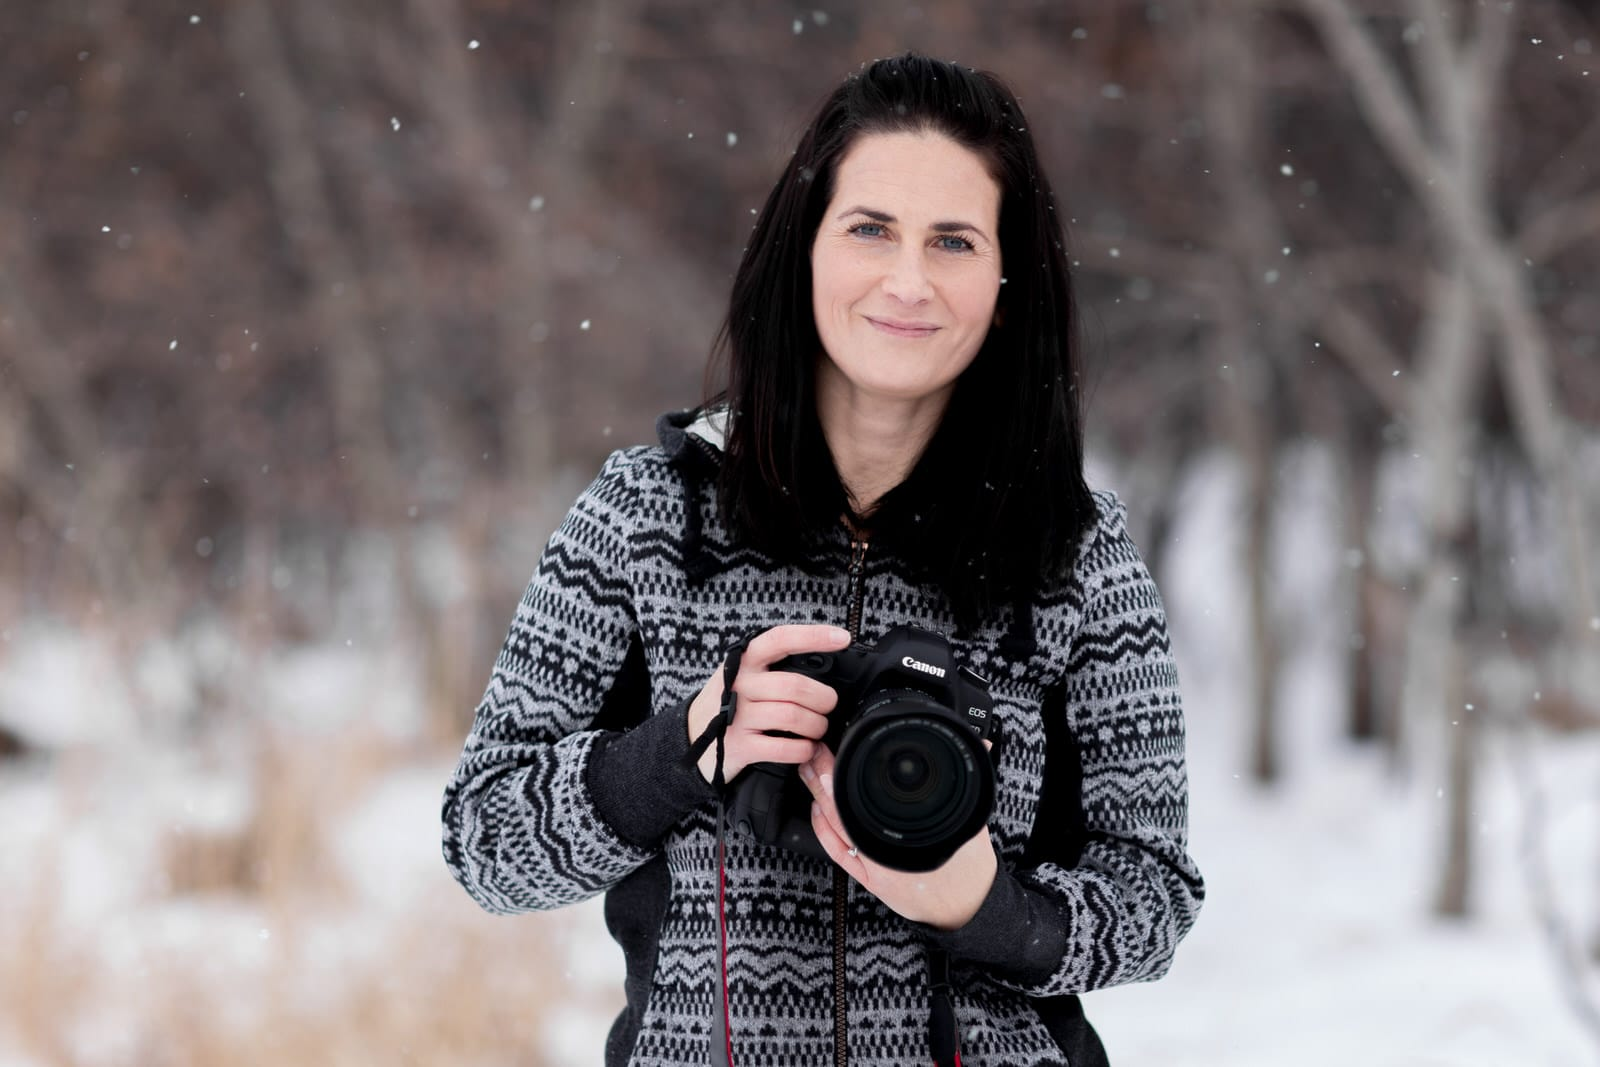 jenna-loree-photography-associate-photographer